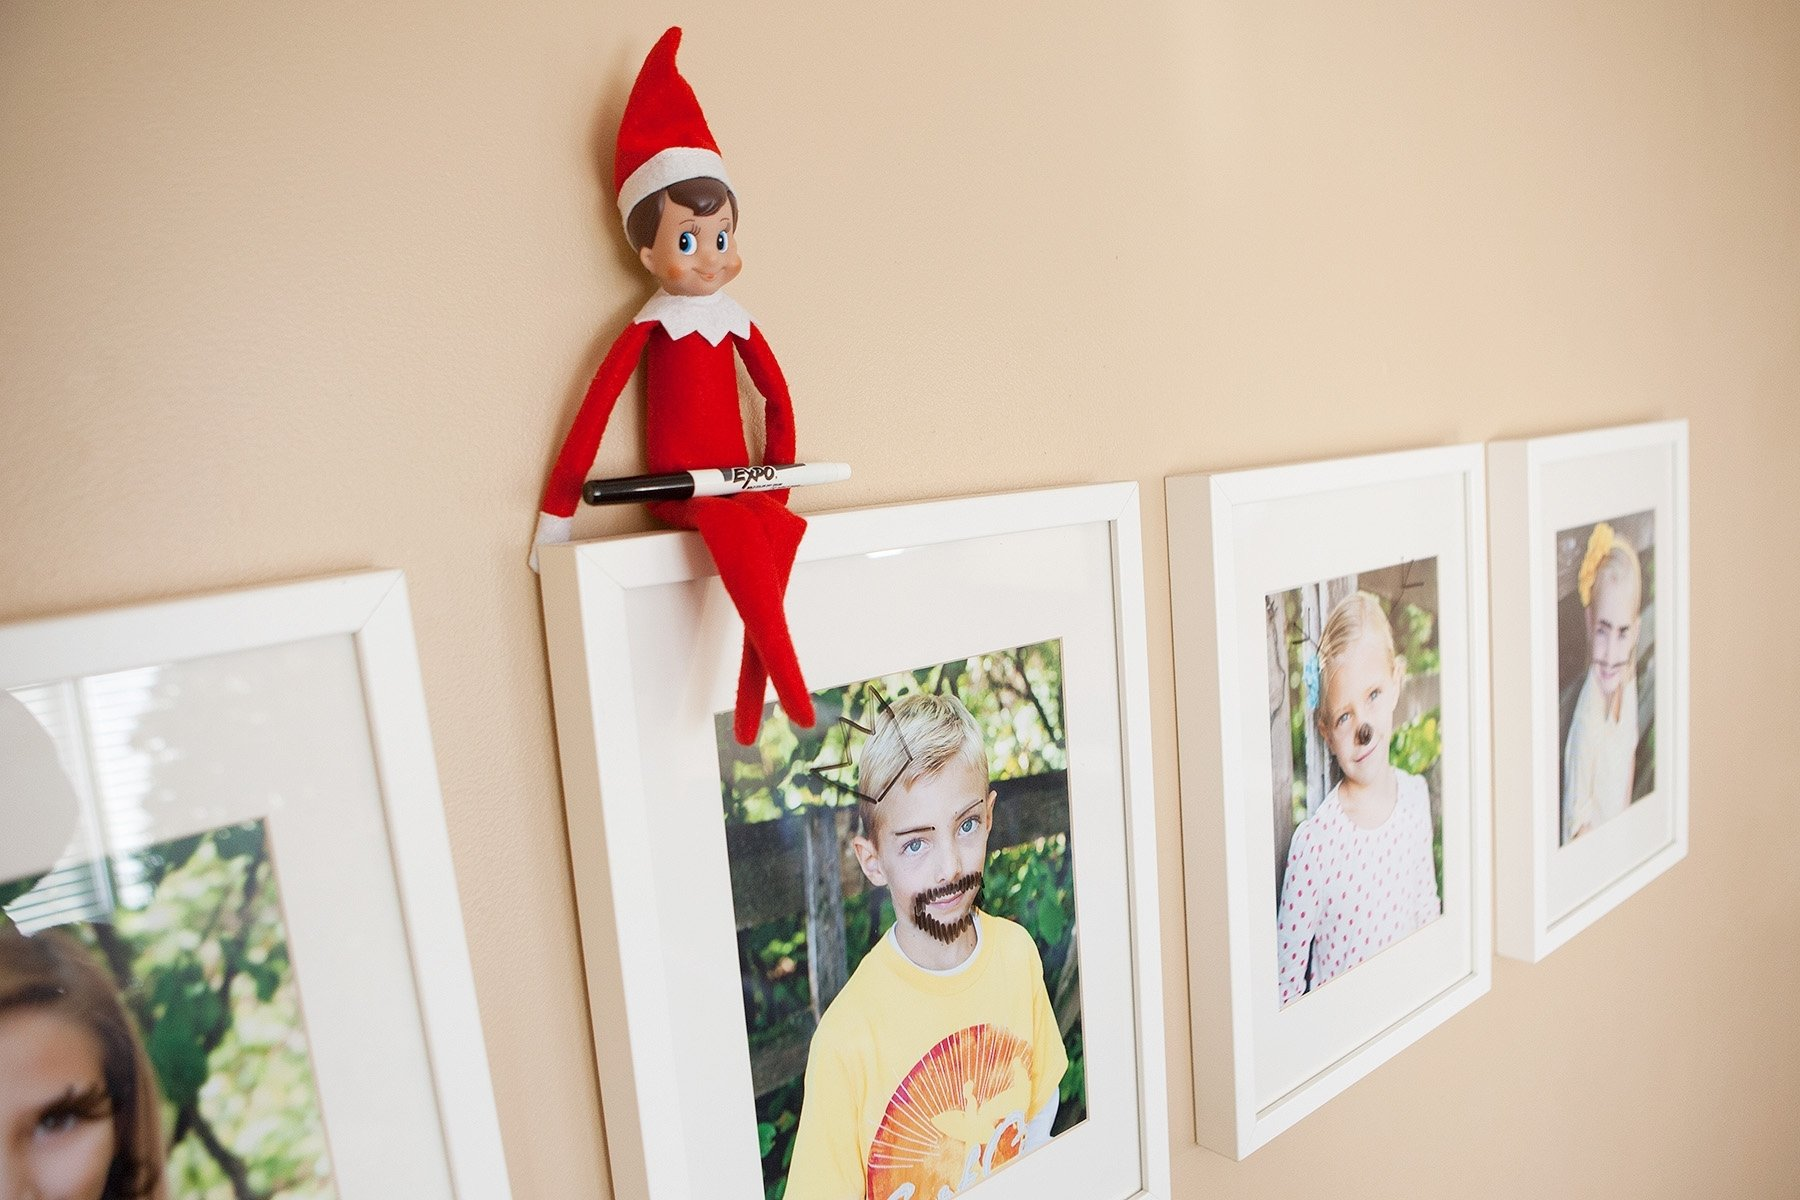 10 Most Recommended Elf On The Shelf Ideas than 40 easy elf on the shelf ideas 1 2020